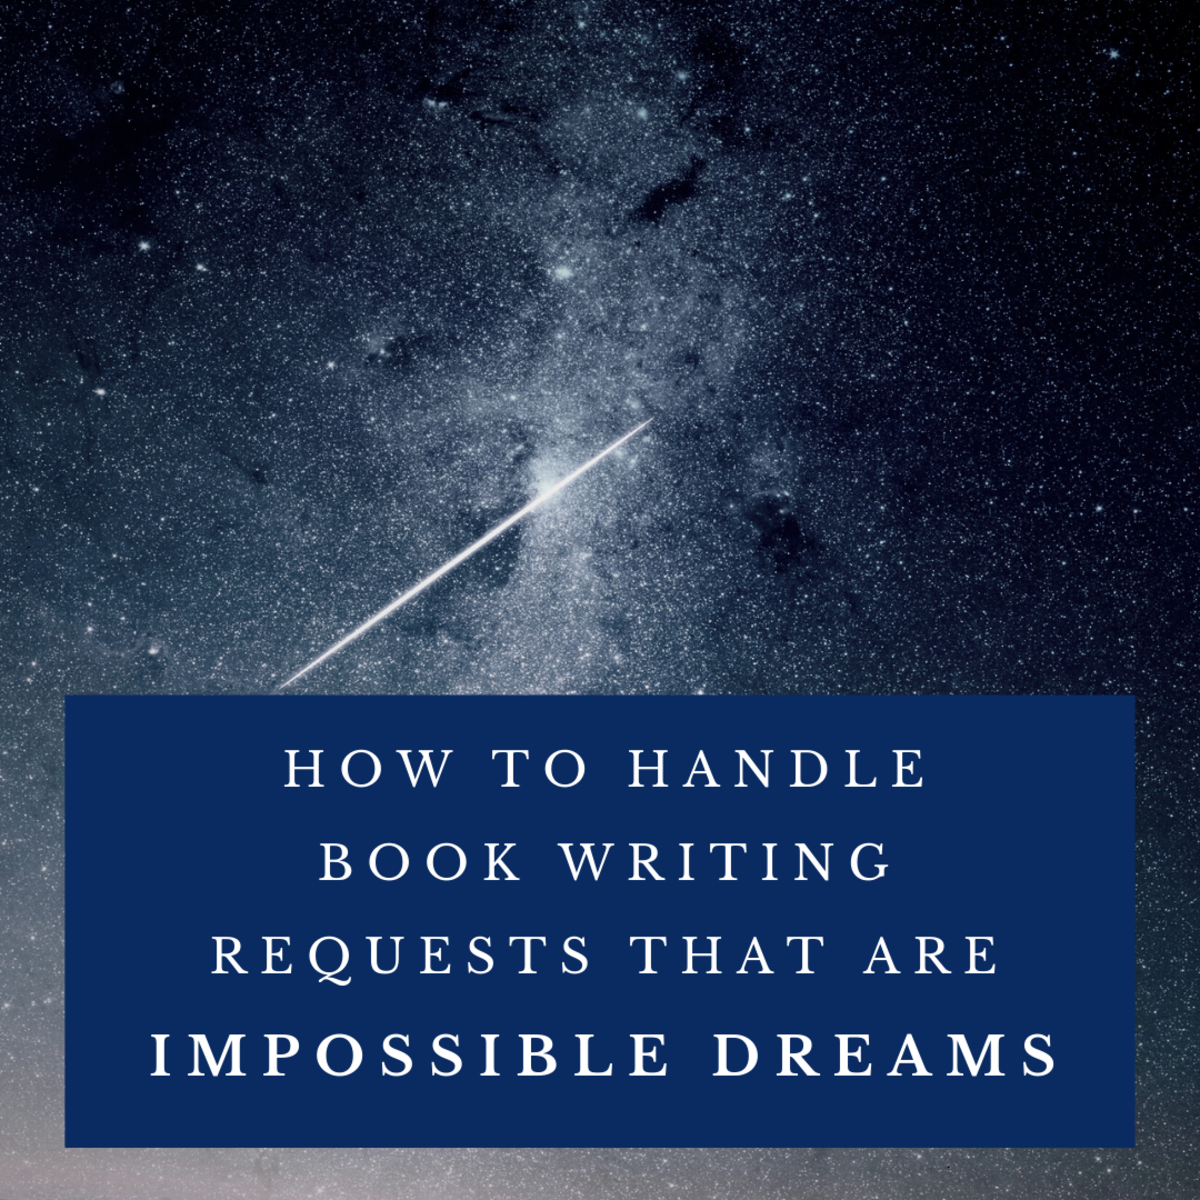 Don't get stuck writing a book to fulfill someone else's impossible dream